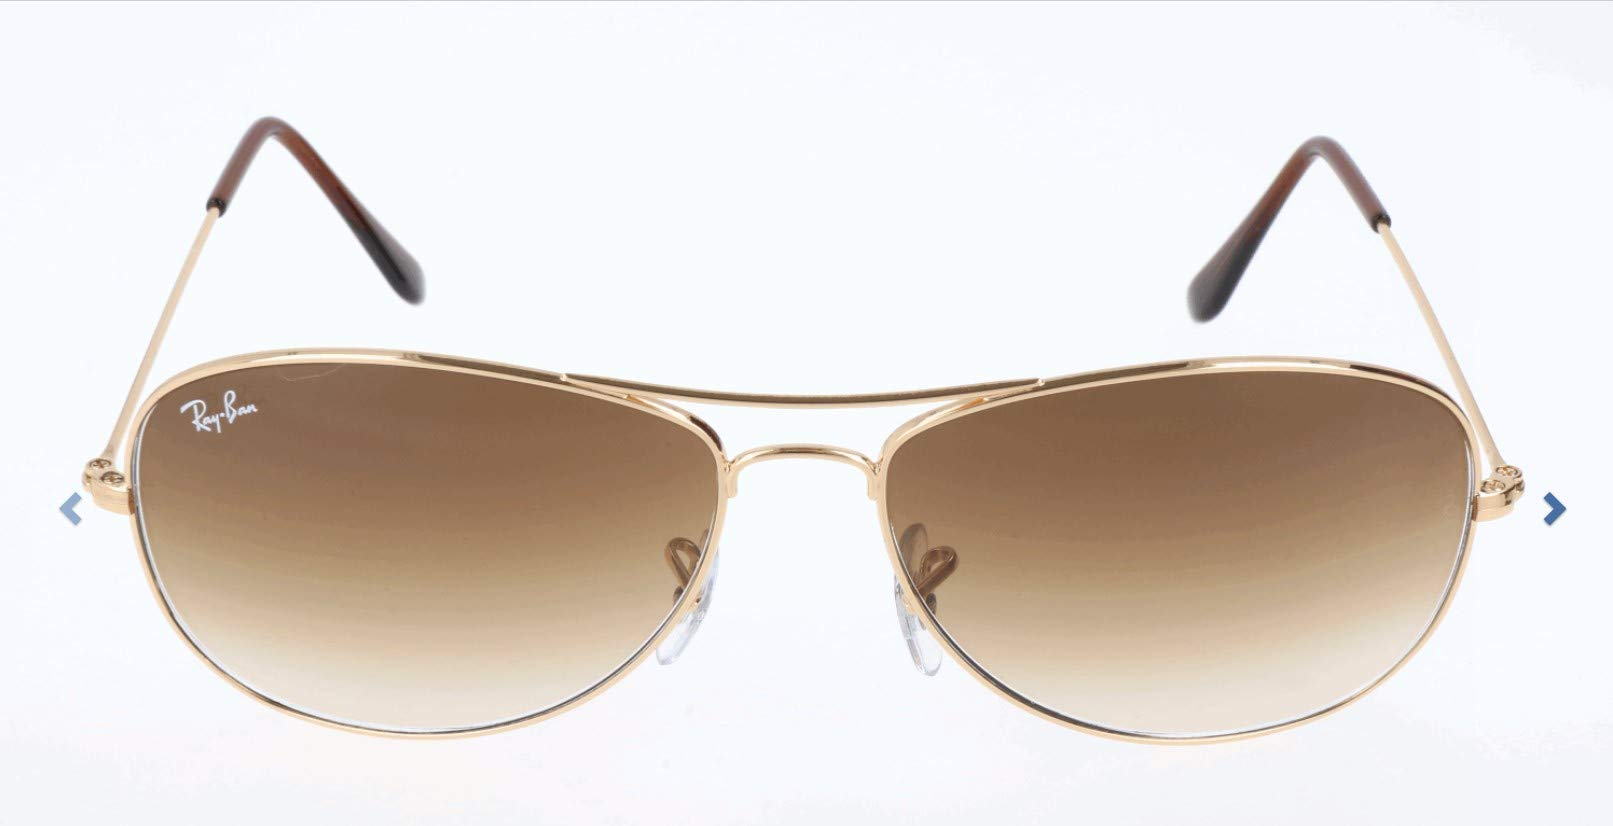 Ray-Ban RB3362 Cockpit Aviator Sunglasses, Gold/Brown Gradient, 56 mm